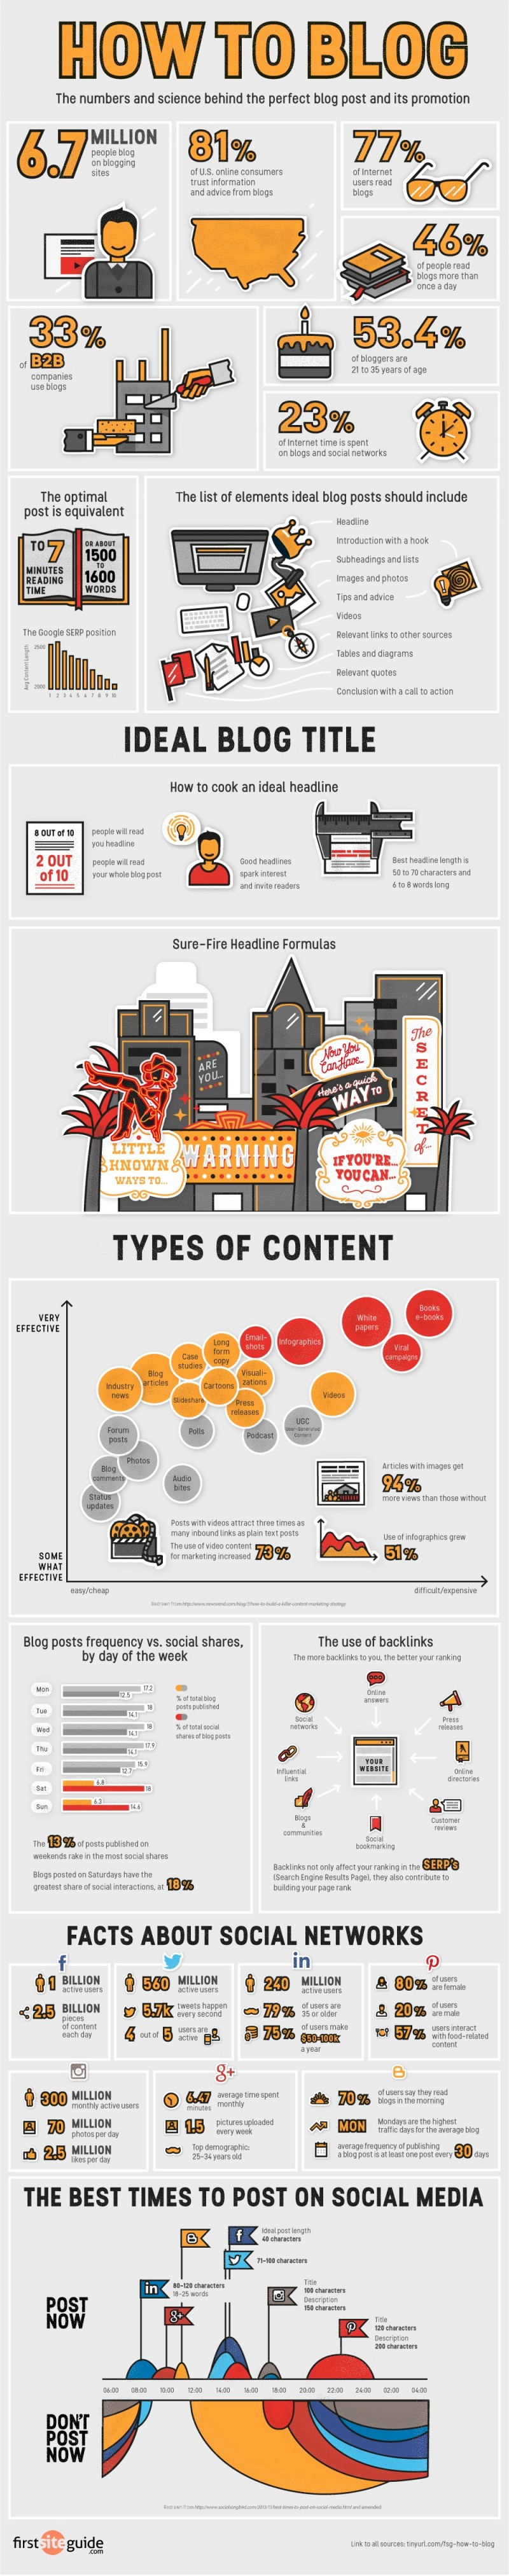 Infographie 272 - How to blog